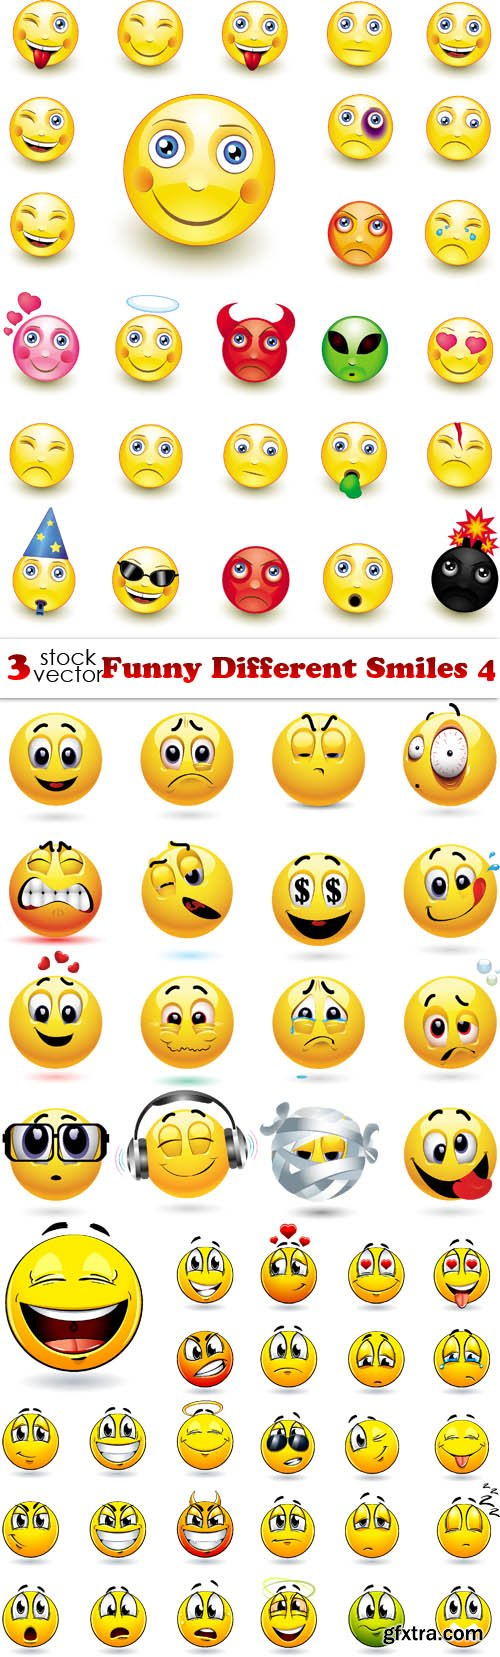 Vectors - Funny Different Smiles 4